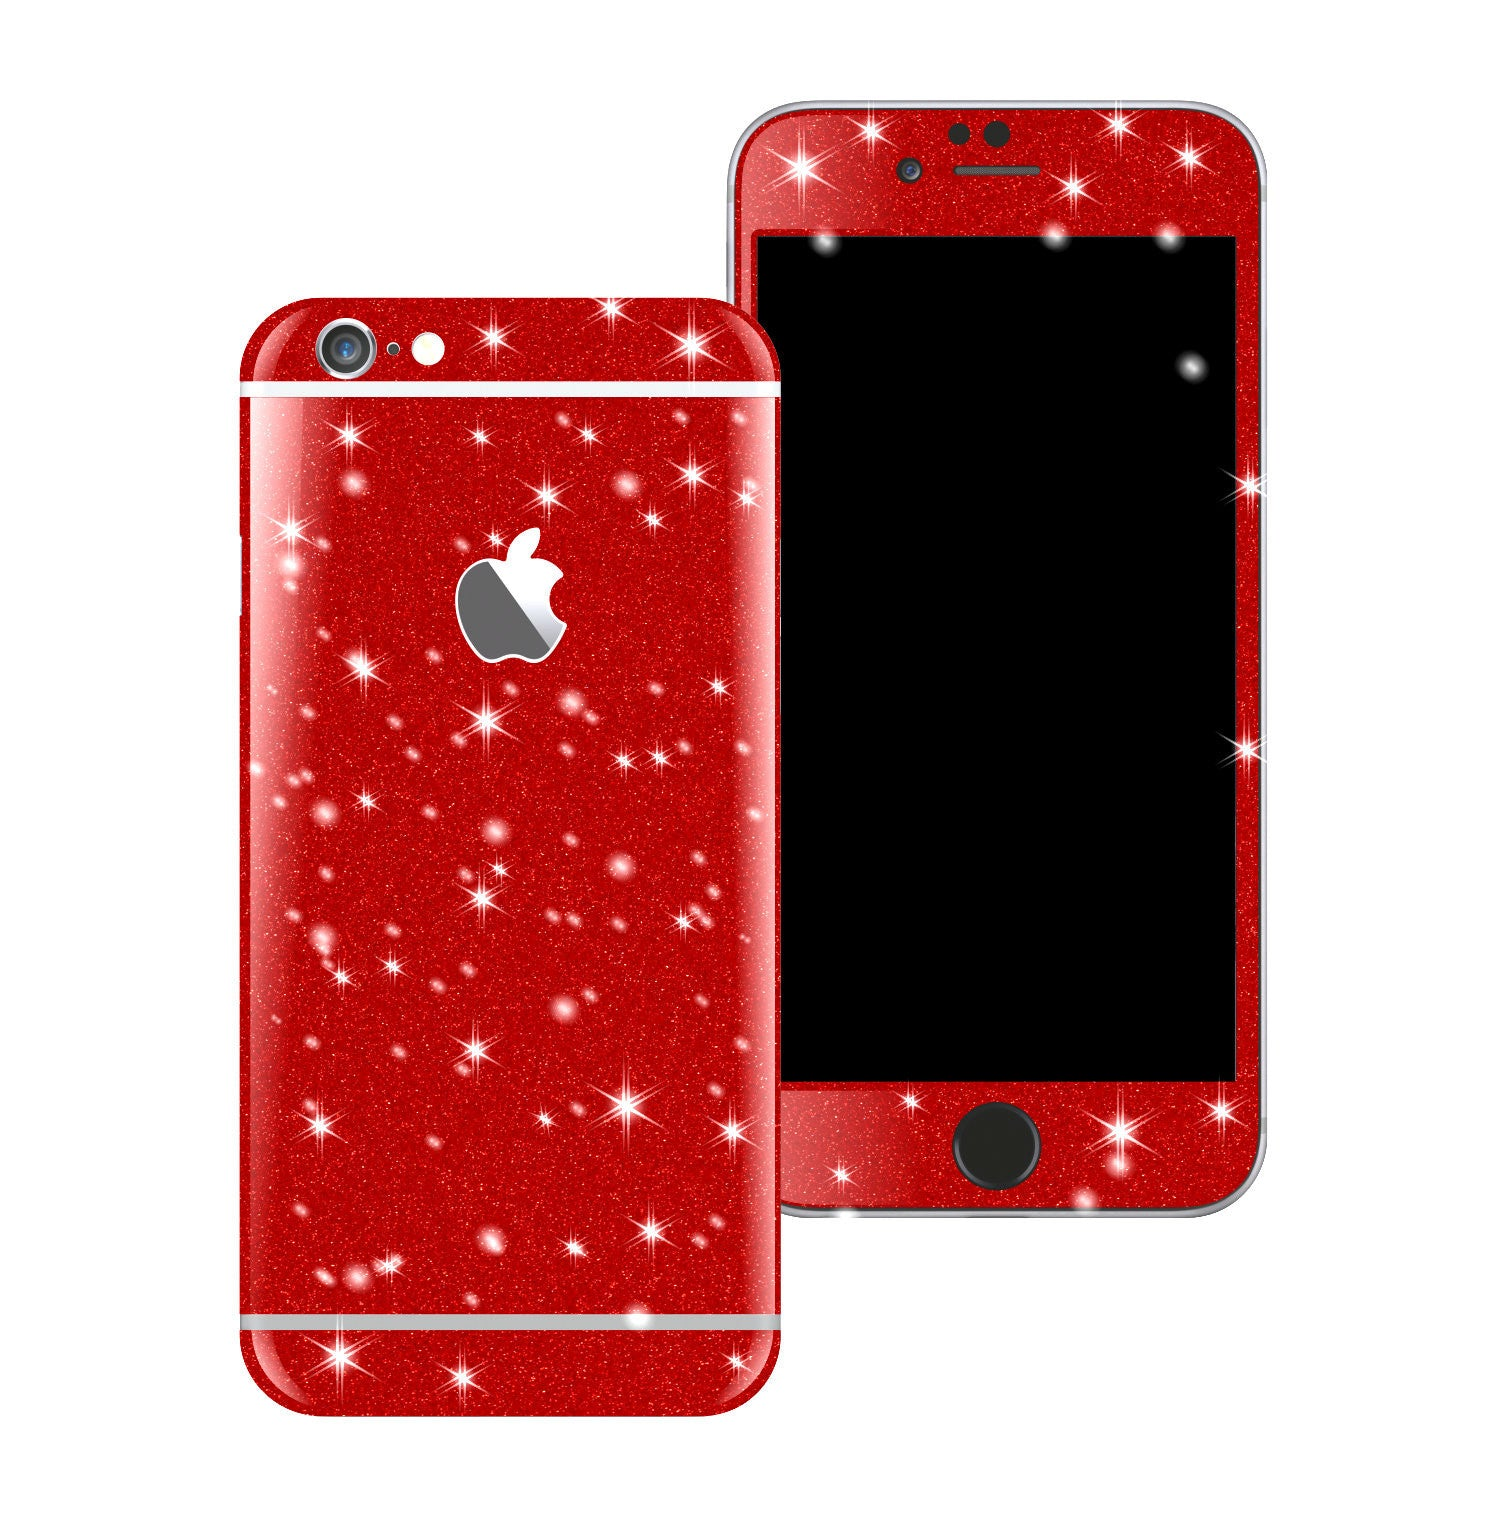 iPhone 6 Diamond RED Shimmering Glitter Skin Wrap Sticker Cover Decal Protector by EasySkinz